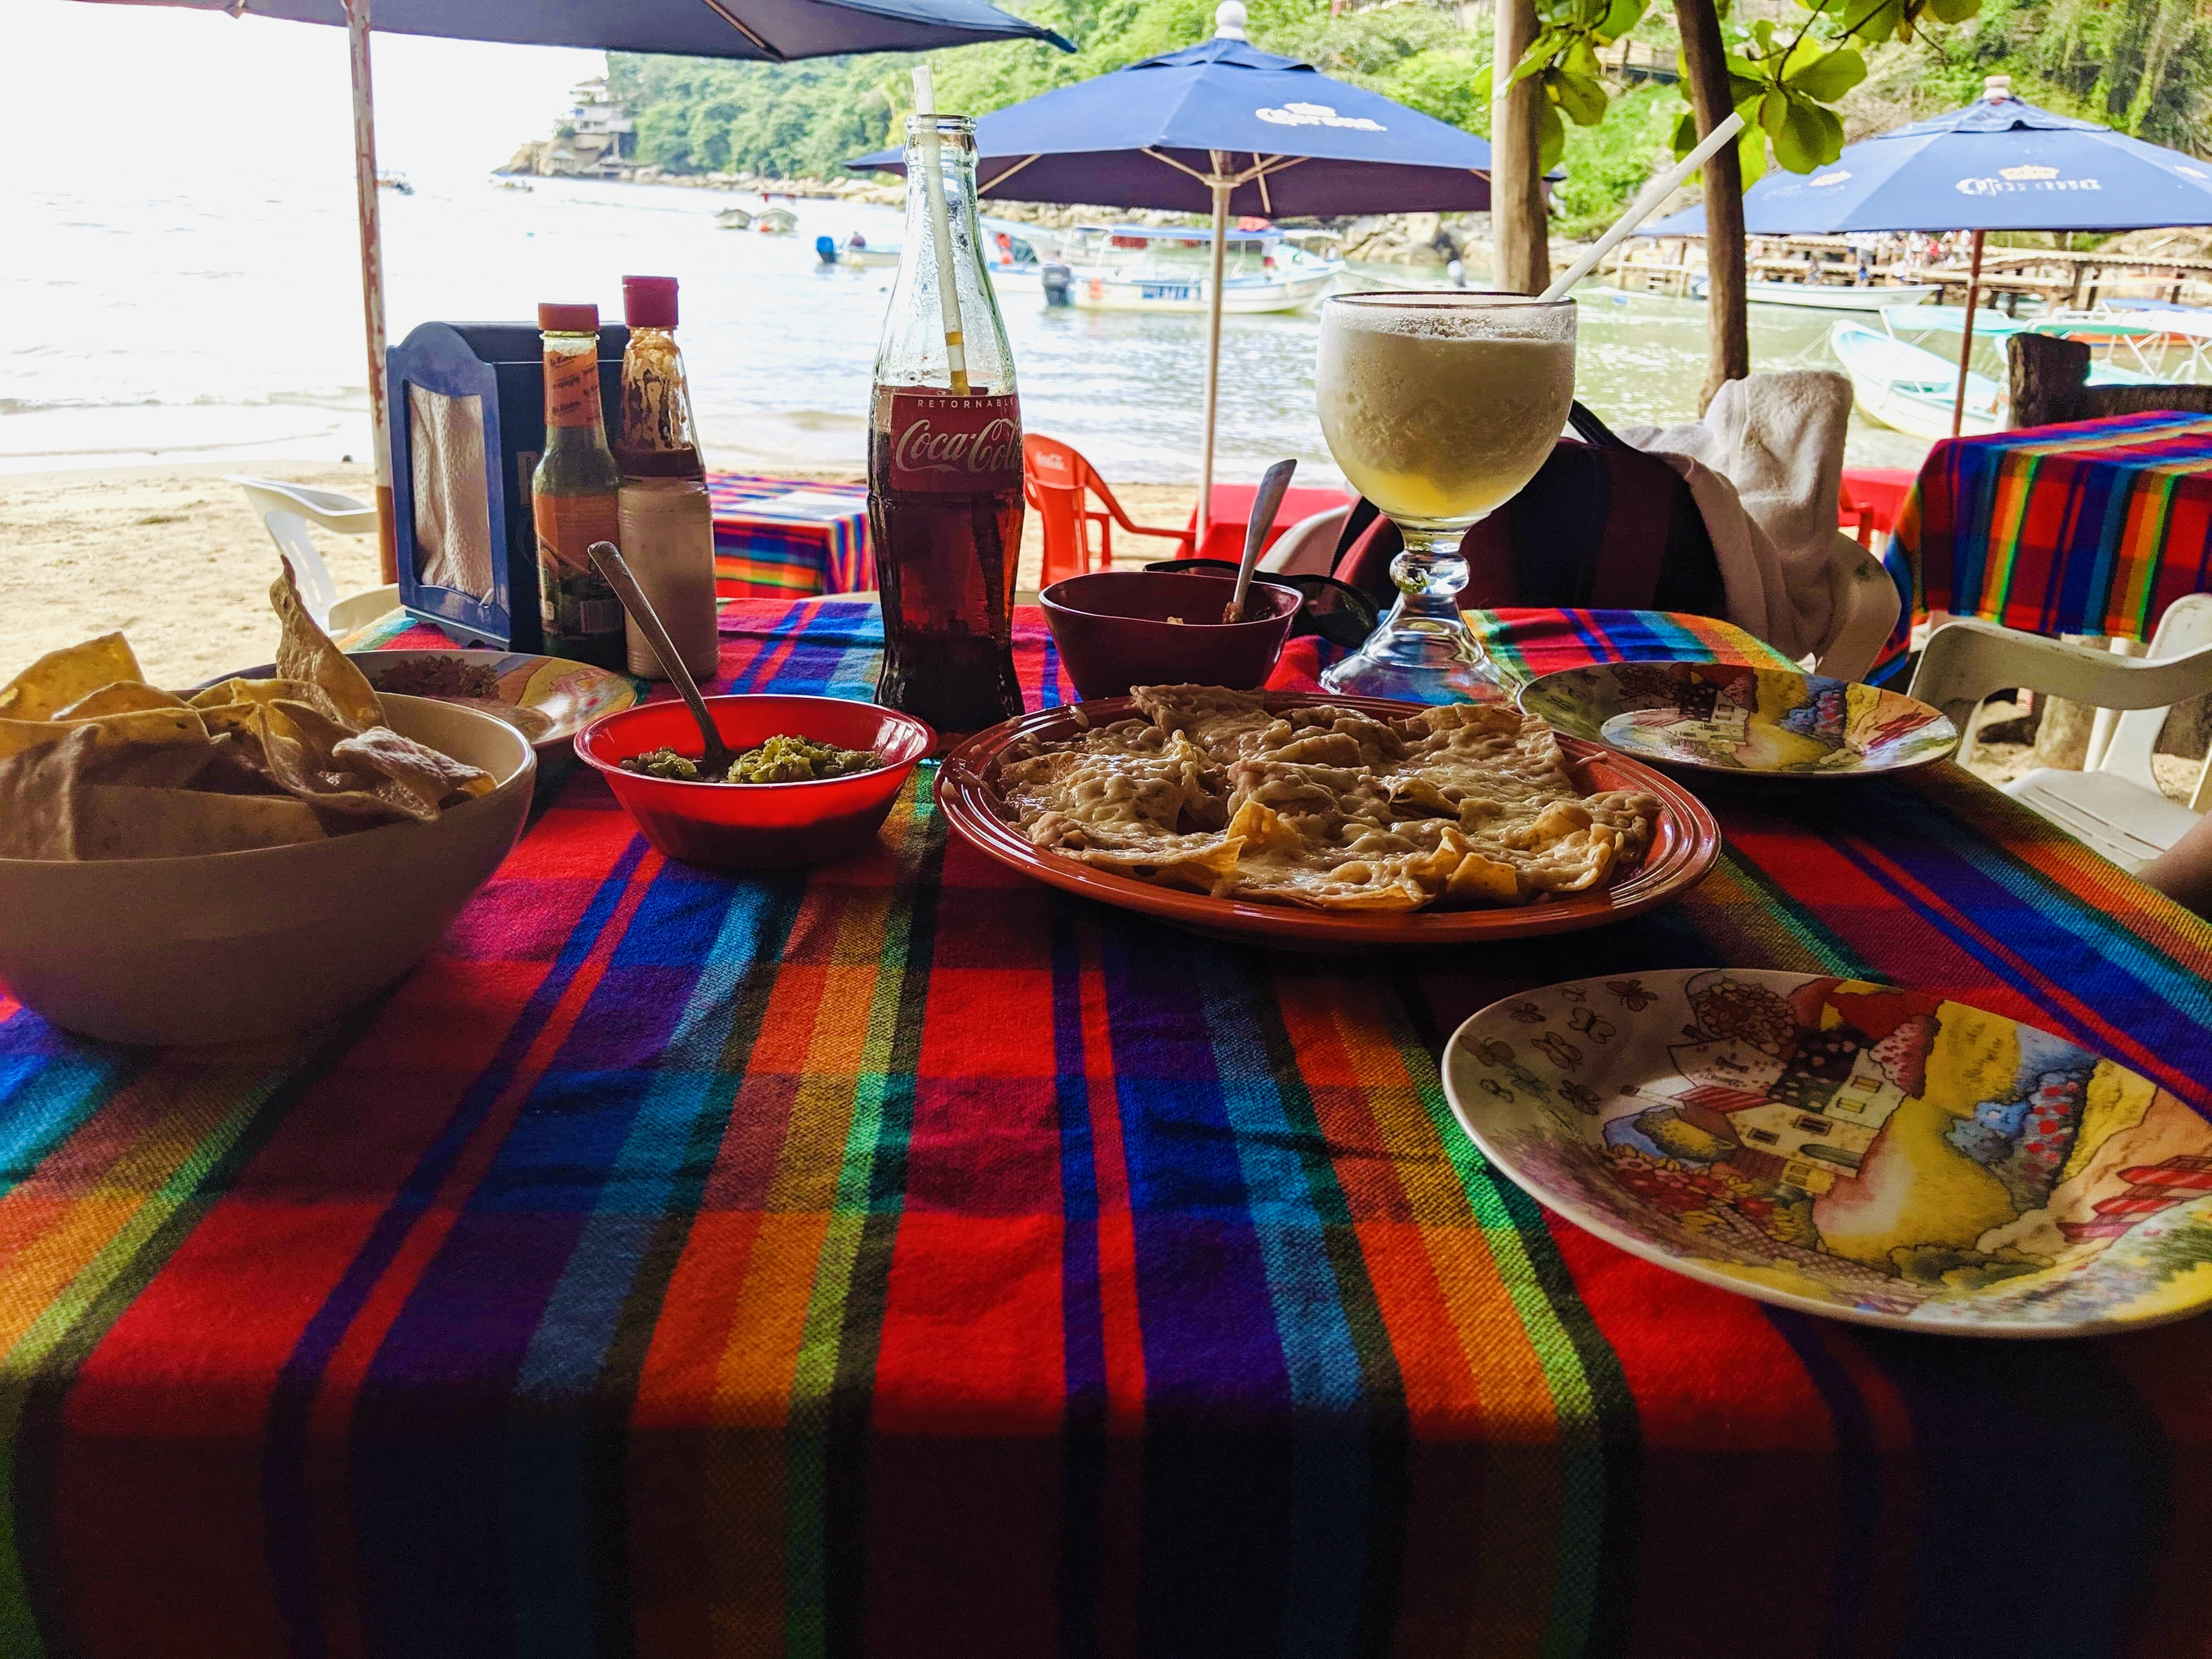 Our drinks and nachos at the beach in the fishing village